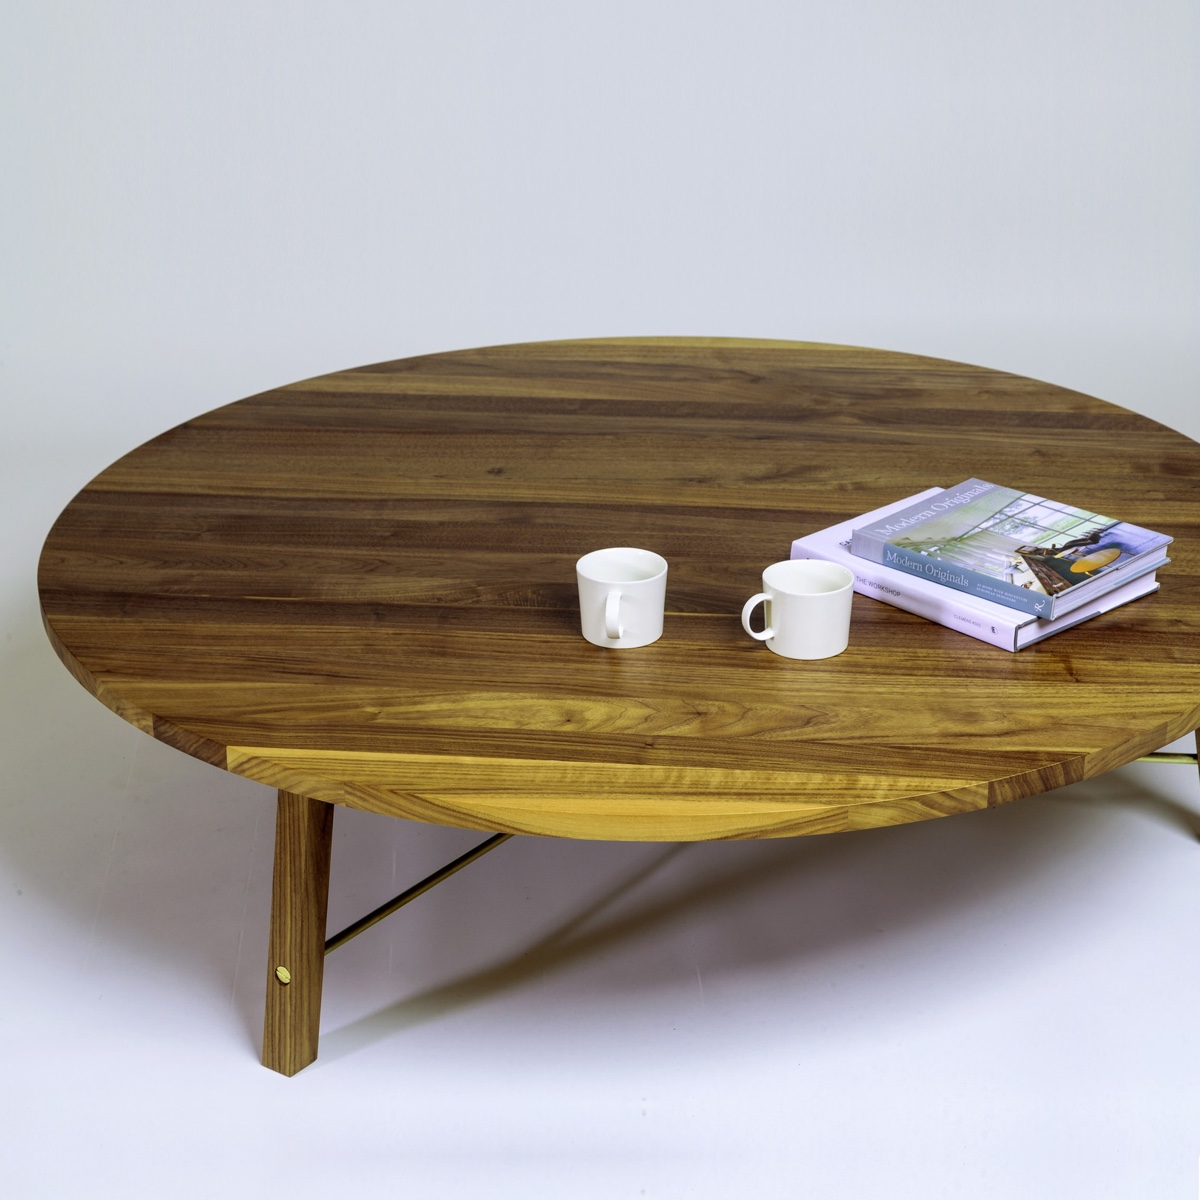 Coffee Table Two. Image via Another Country.